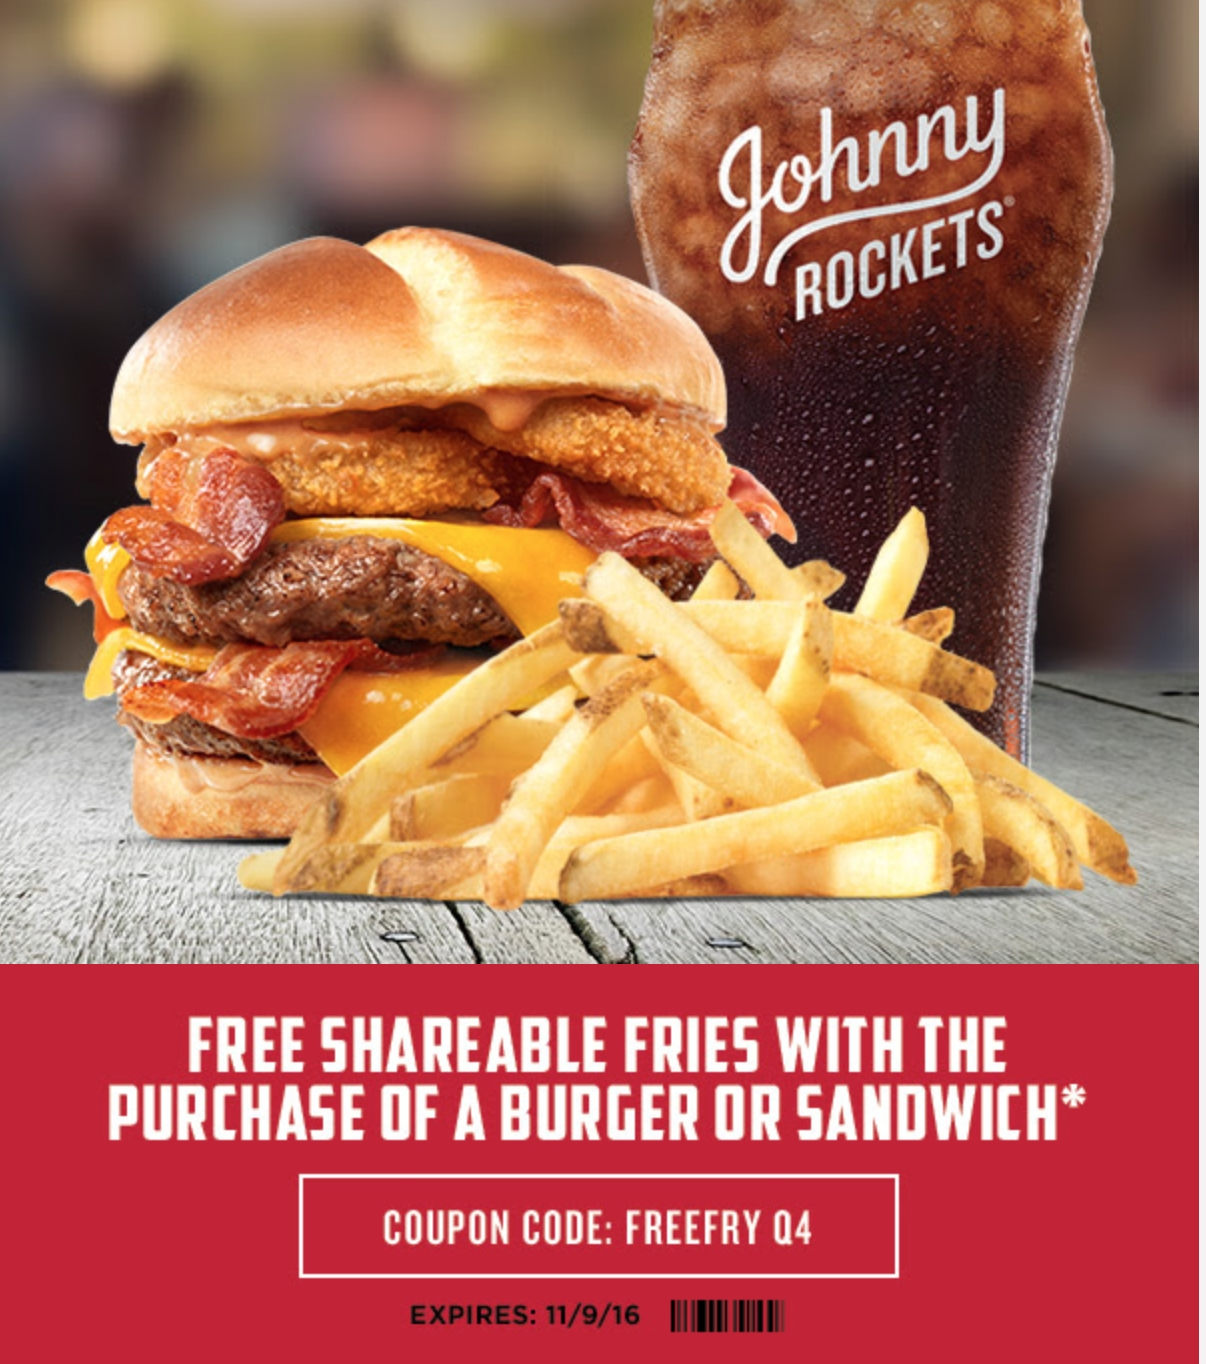 Johnny's coupons